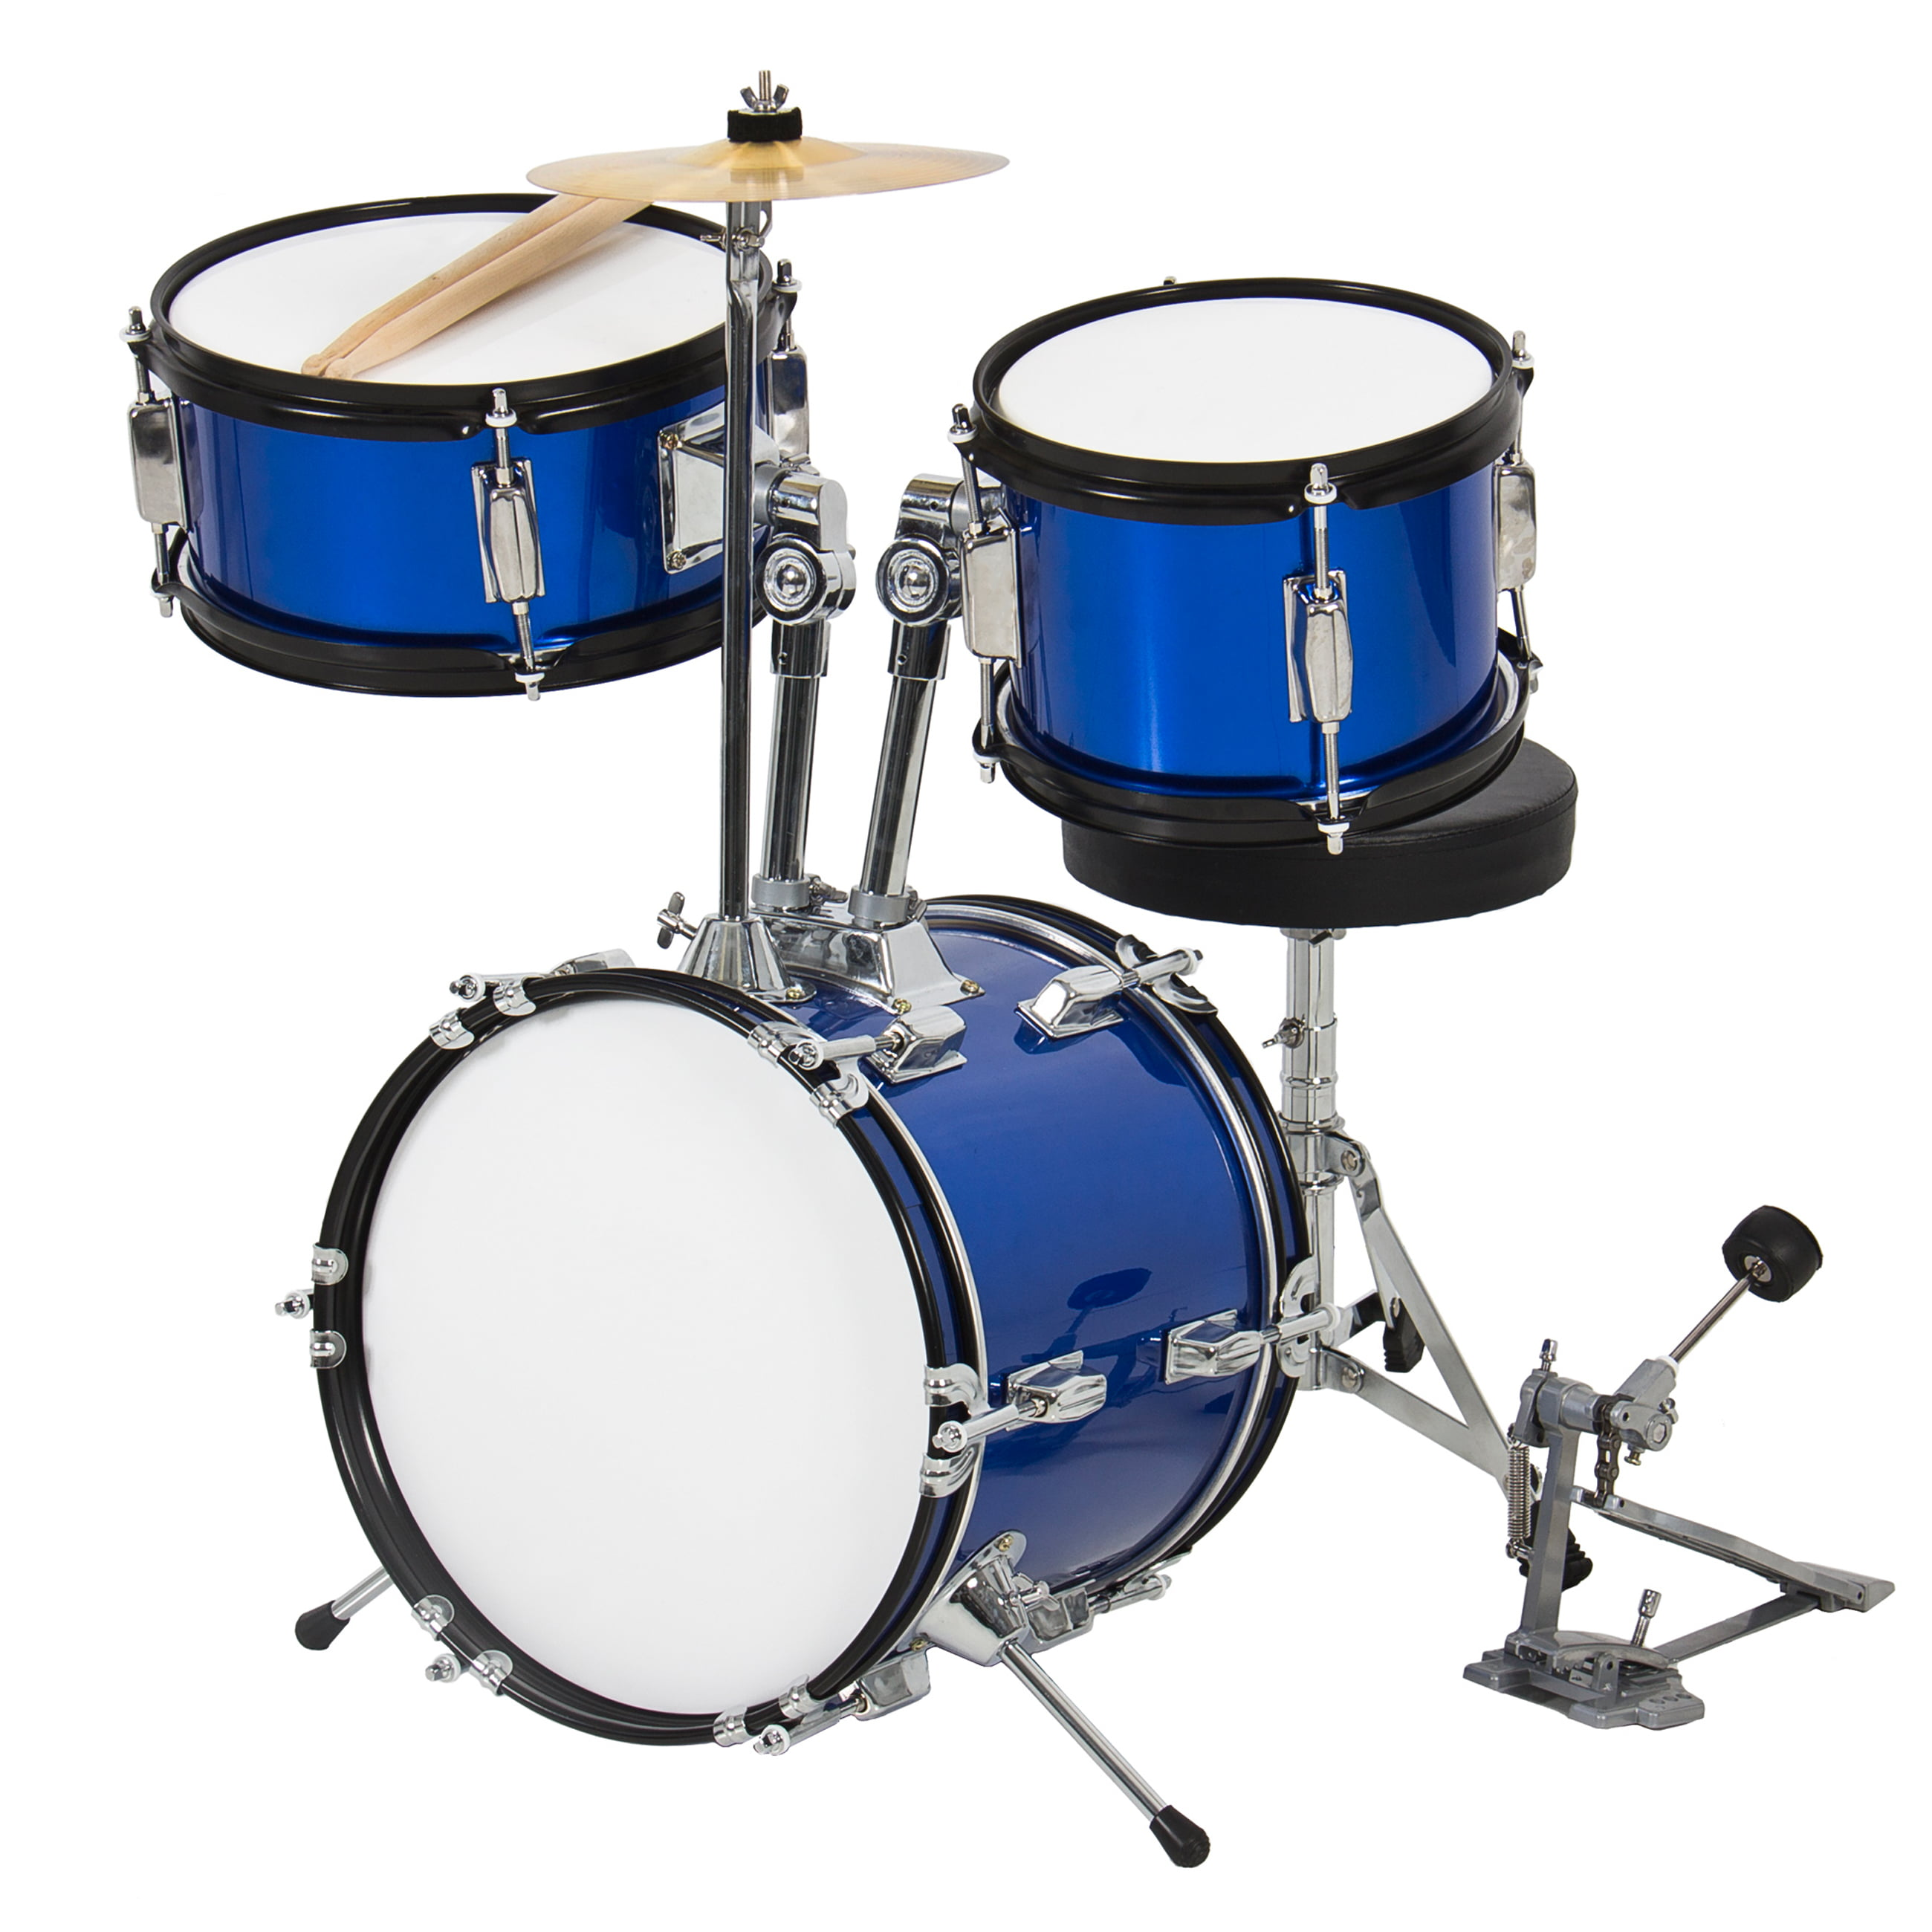 """Kids Drum Set 3 Pc 13"""" Beginners Complete Set with Throne, Cymbal and More- Blue by Best Choice Products"""